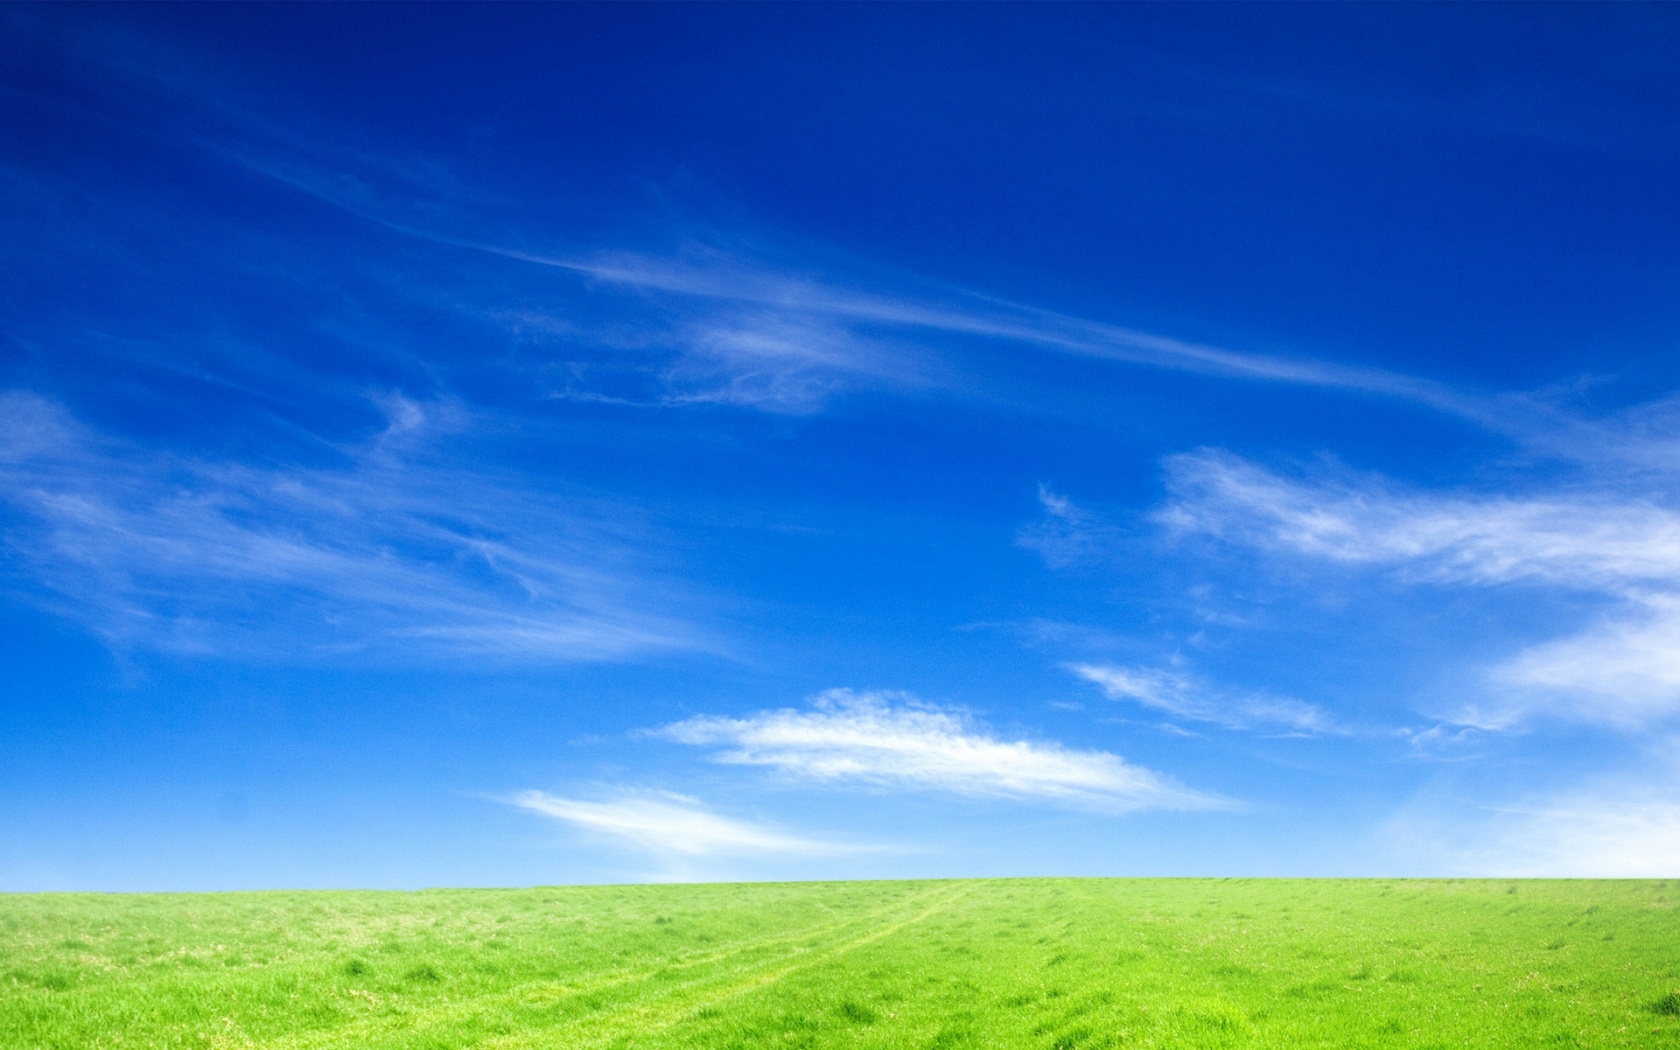 Animated Girl Wallpaper Free Download Blue Sky And Green Grass Wallpapers In Jpg Format For Free